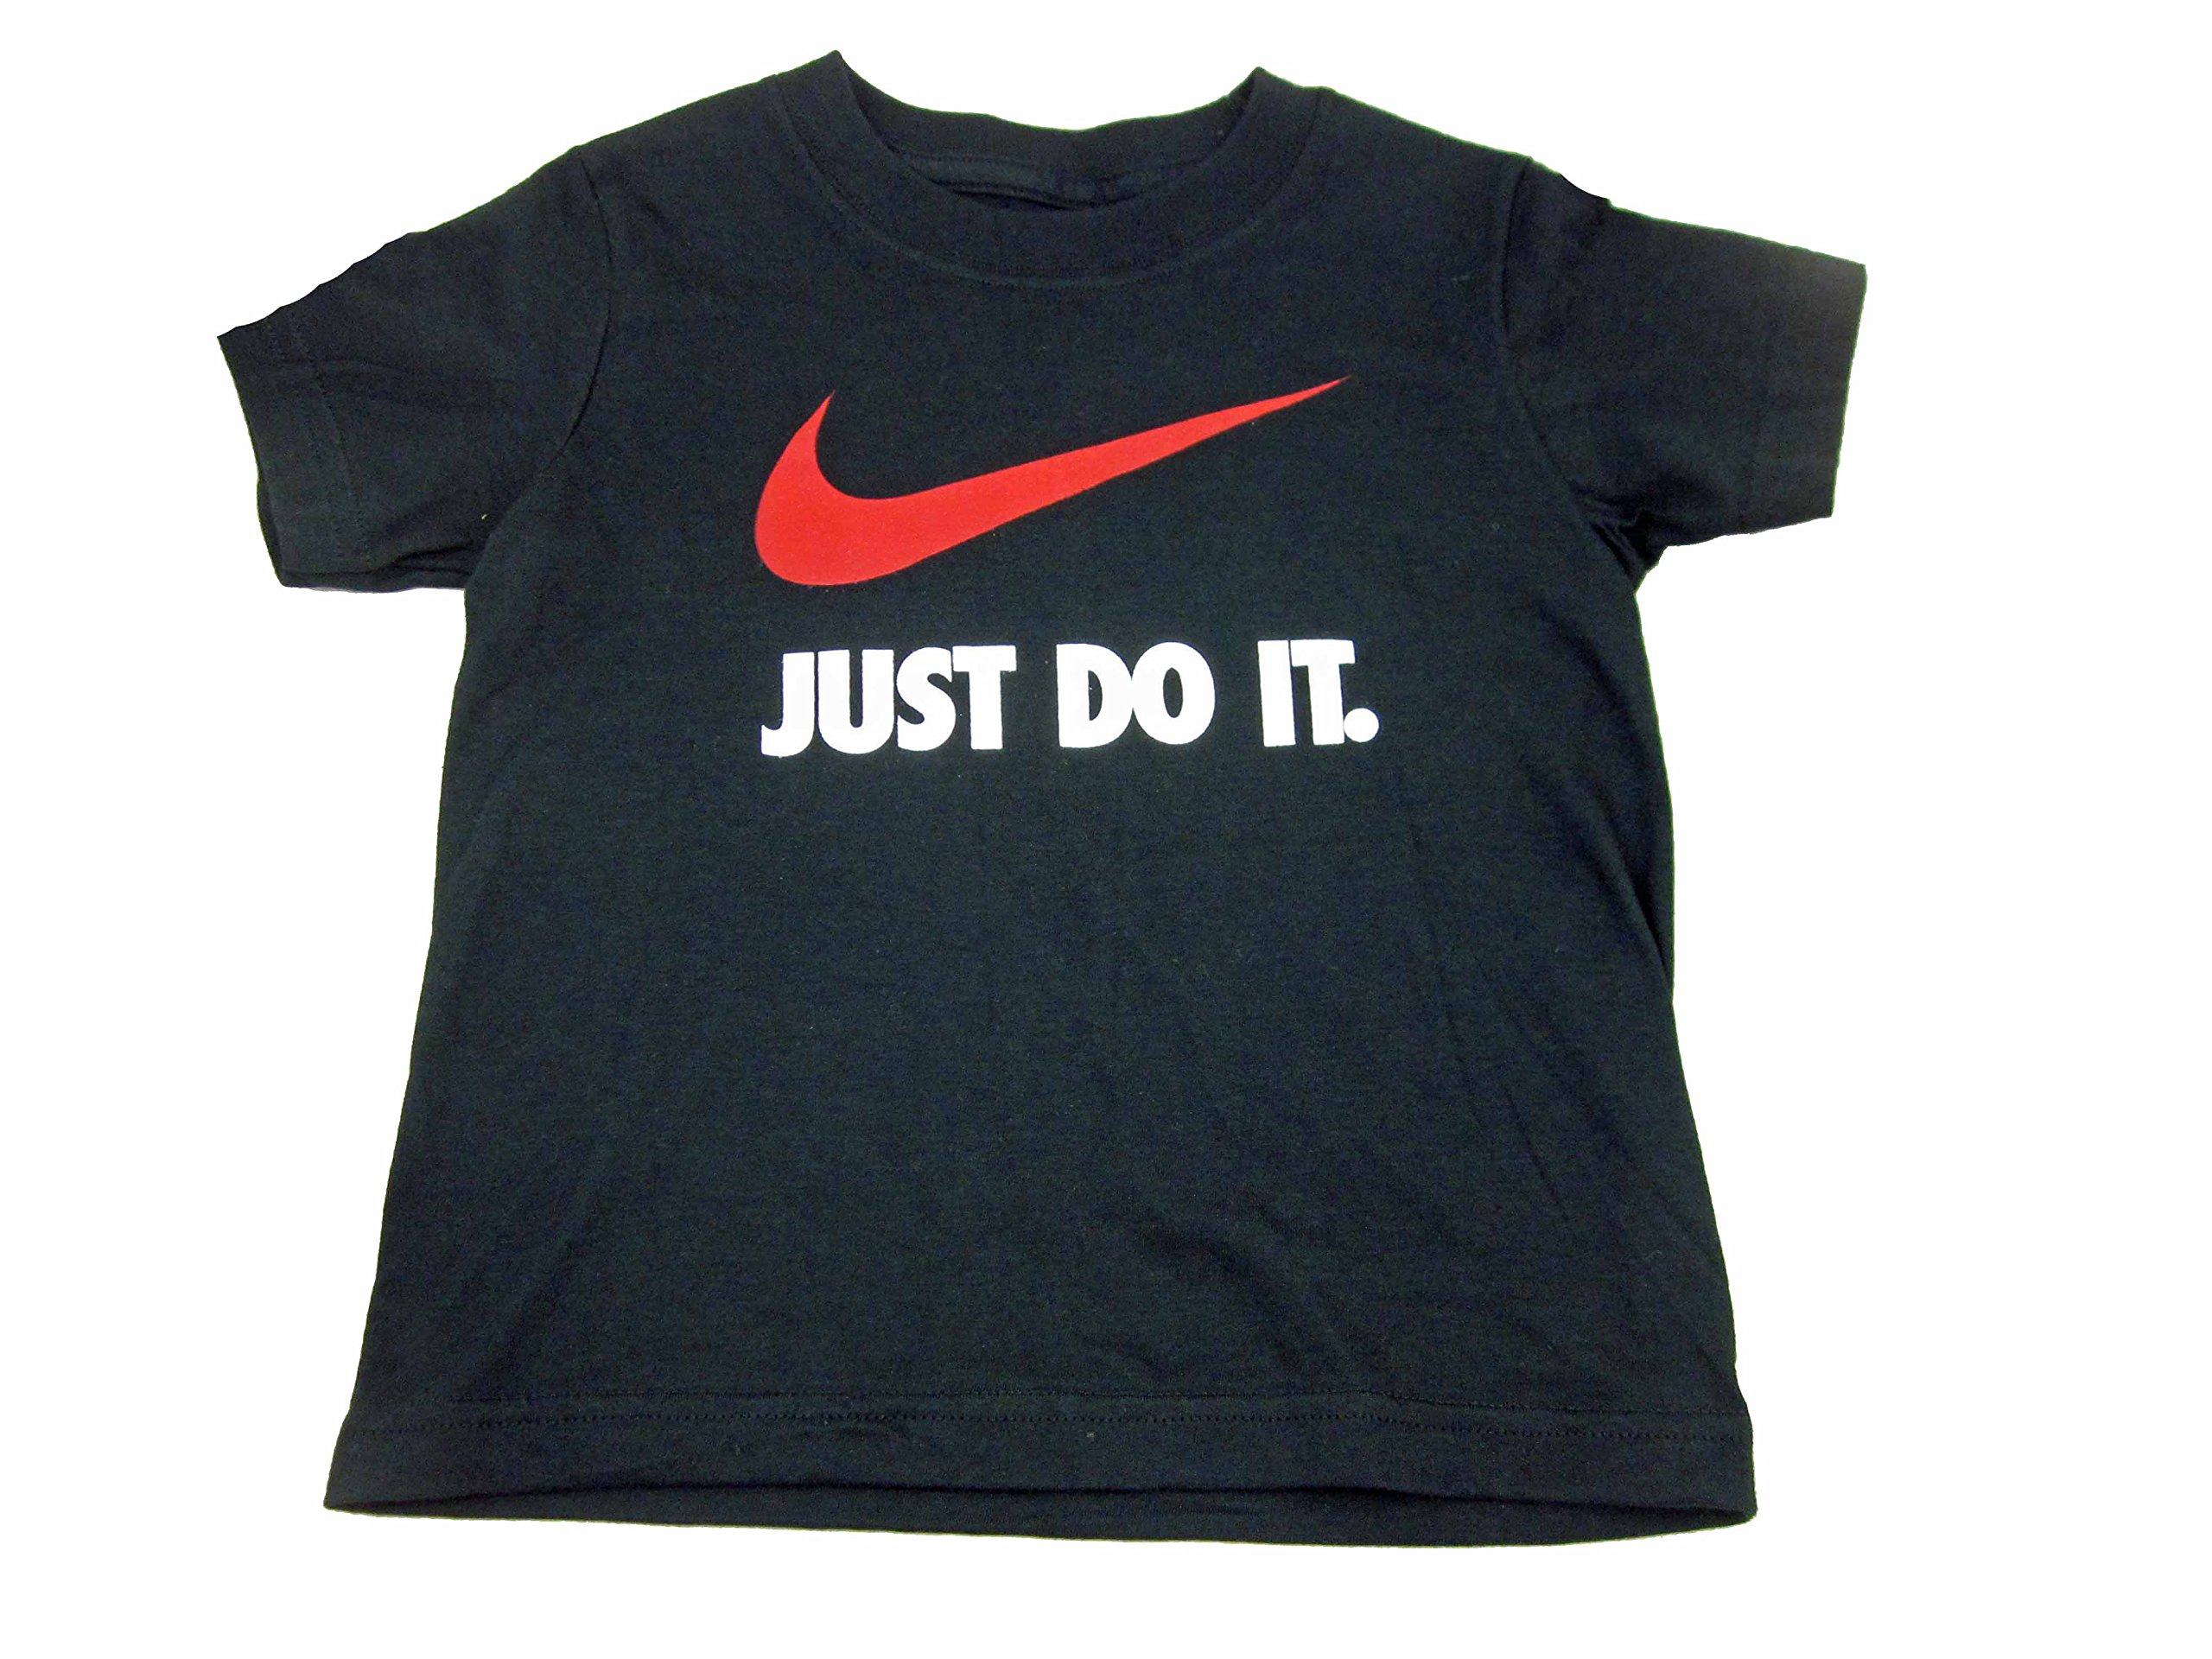 Nike Boys Toddler T-Shirt (3T, Black (769461))